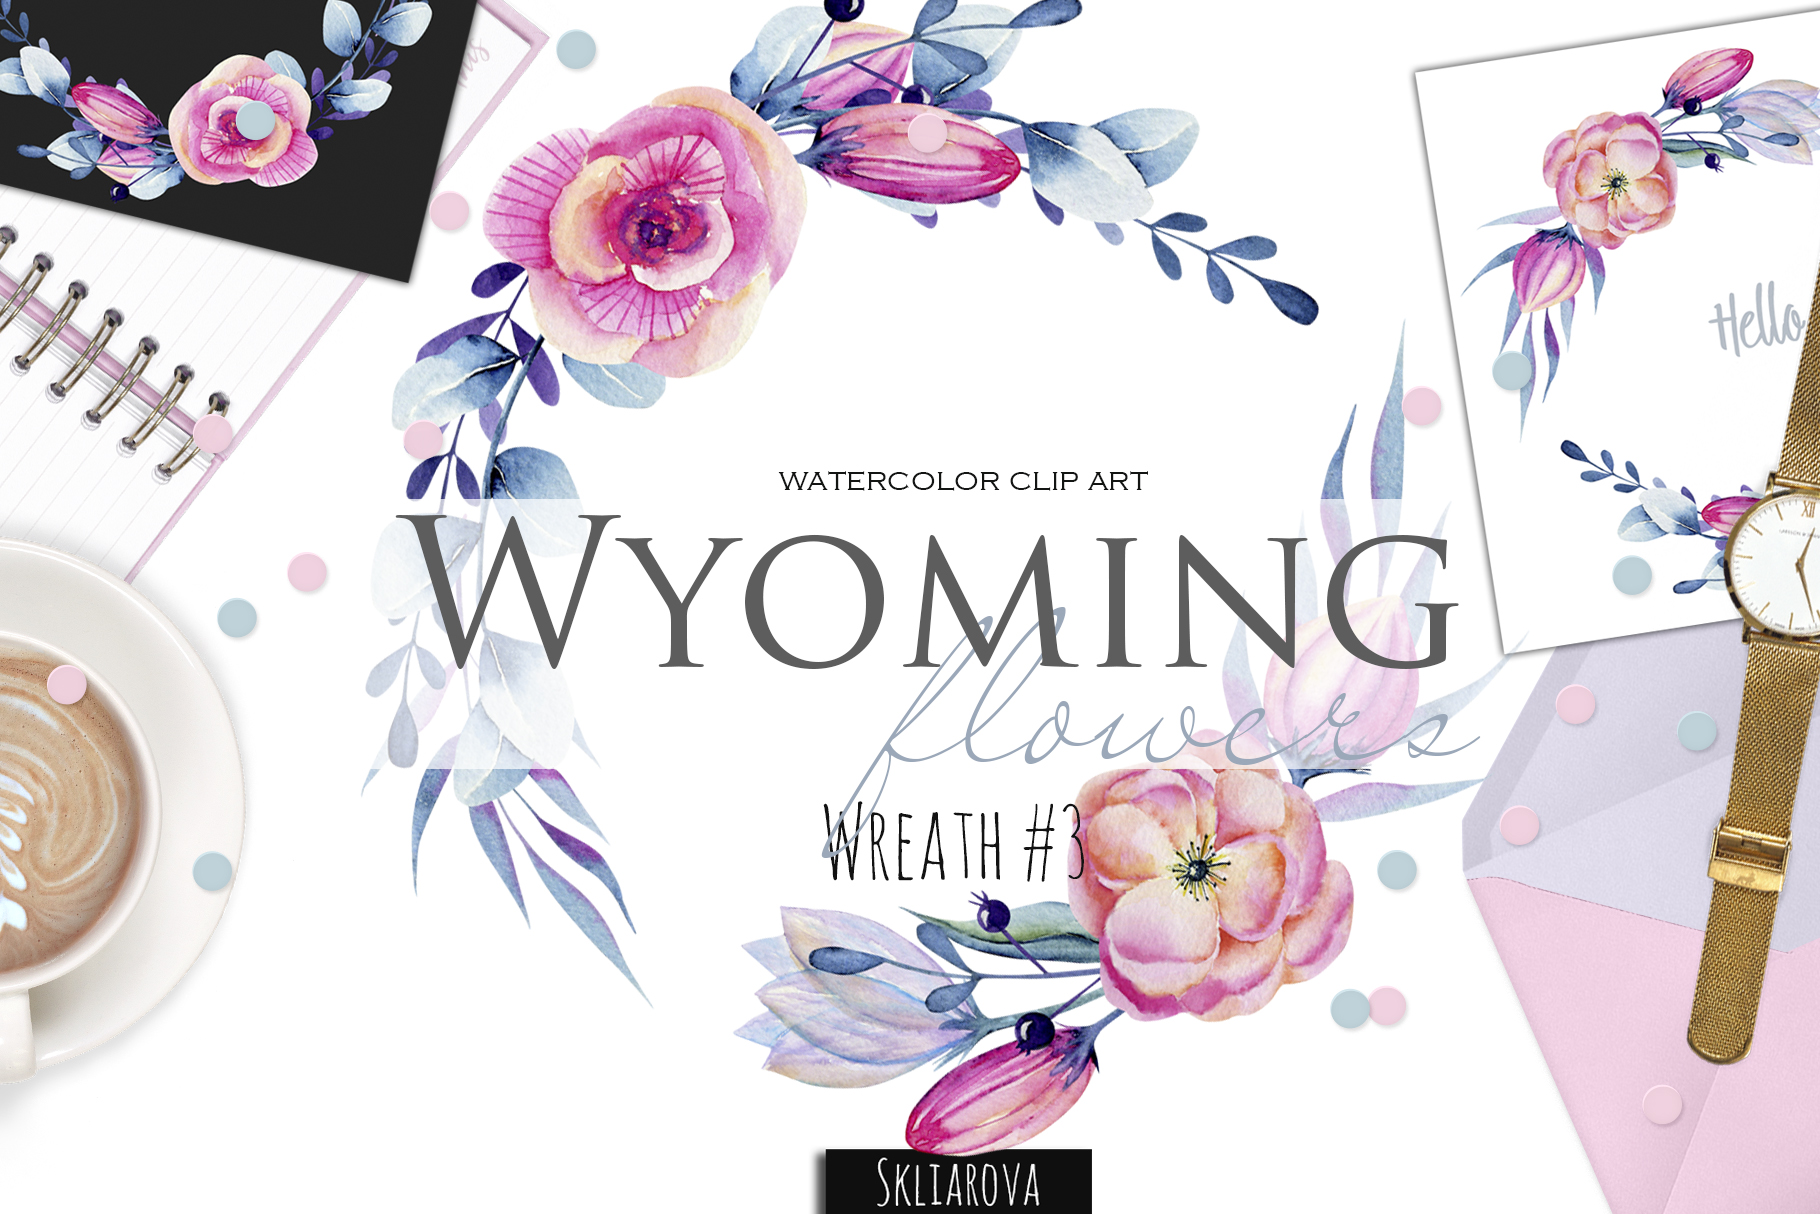 Wyoming flowers. Wreath #3 example image 1